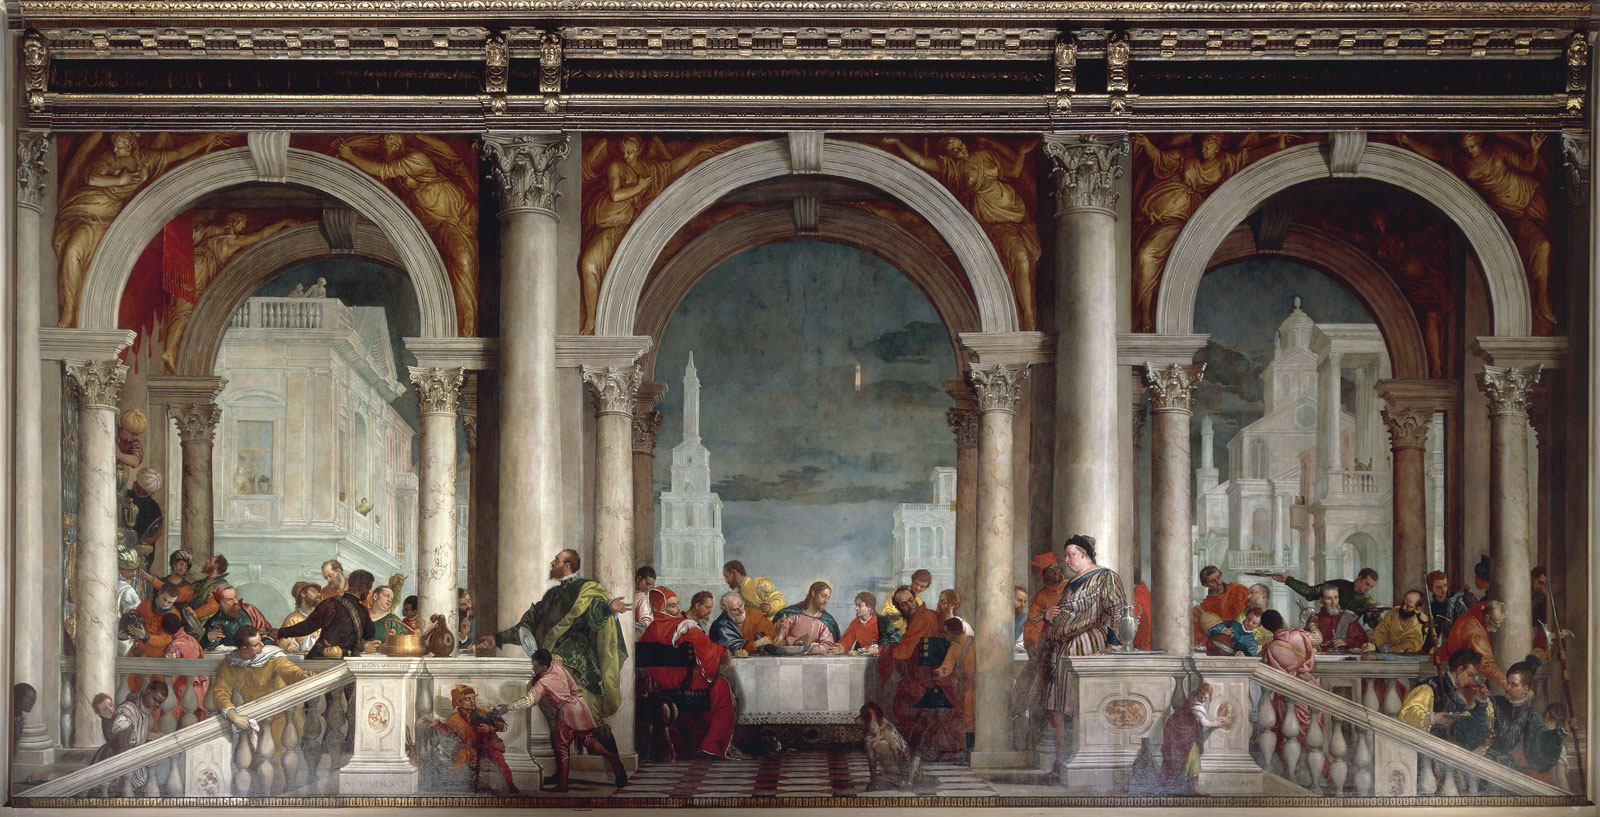 The Feast in the House of Levi by Paolo Veronese